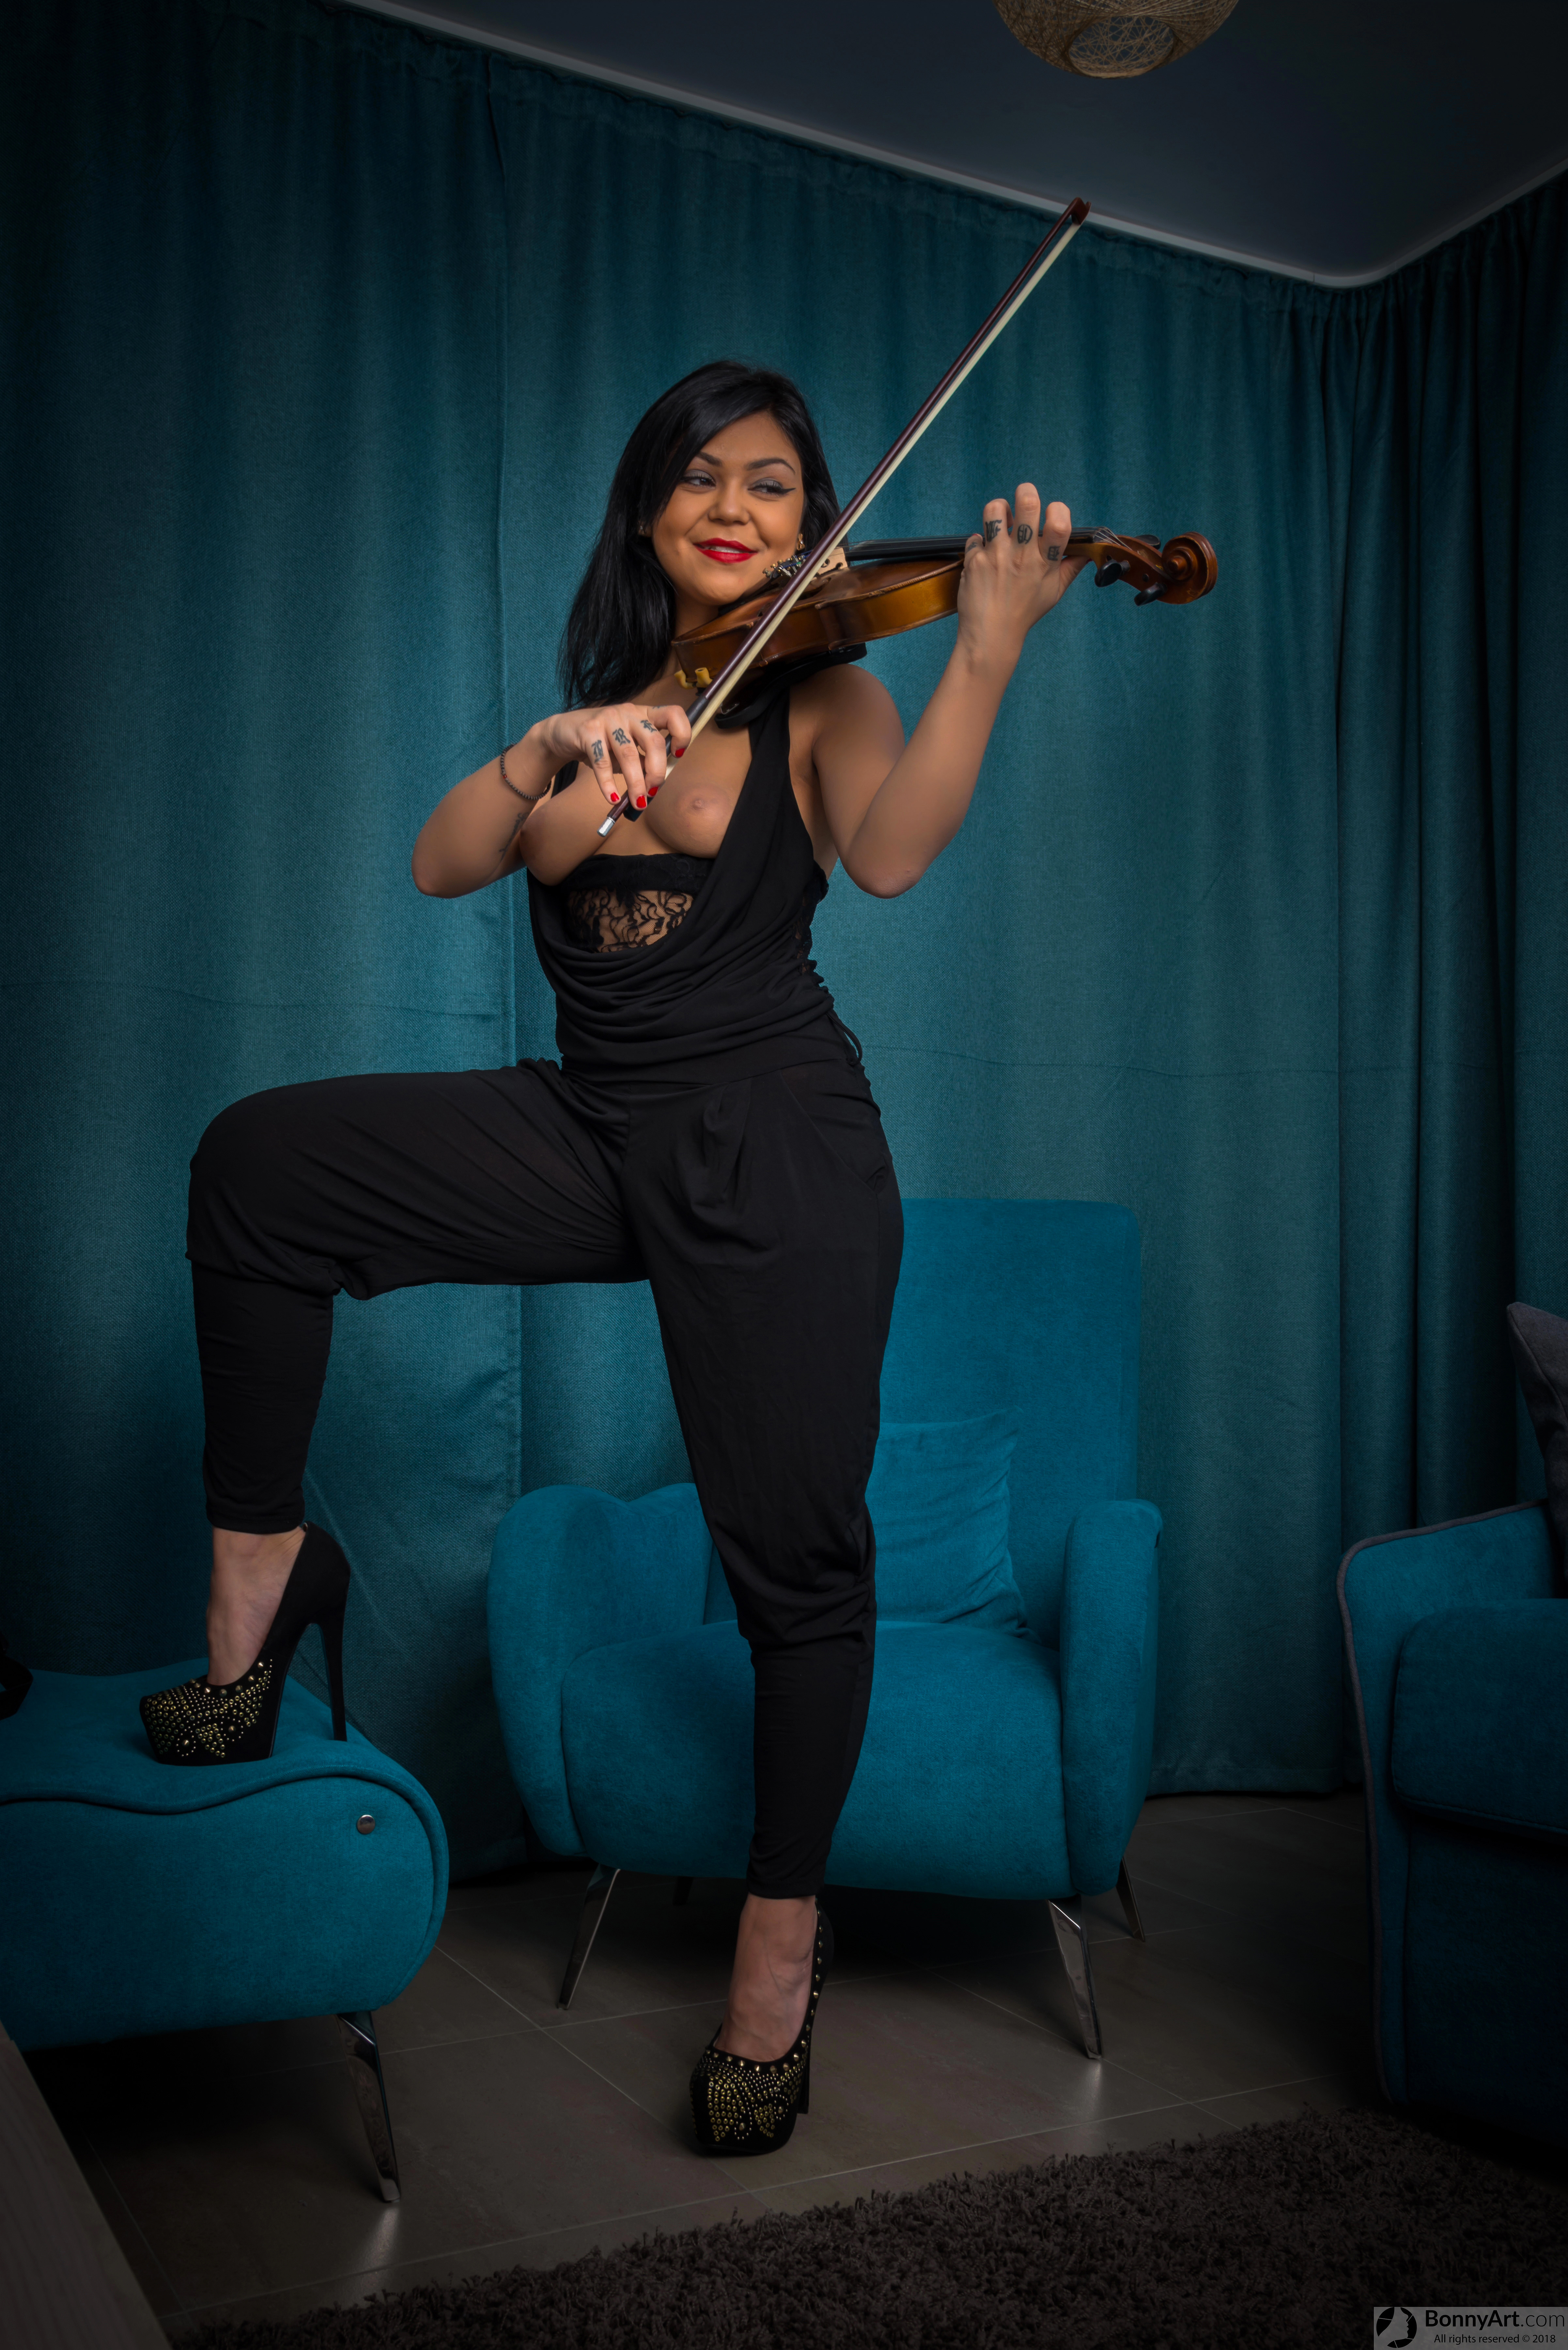 Violinist Girl Playing with Breasts Out HD